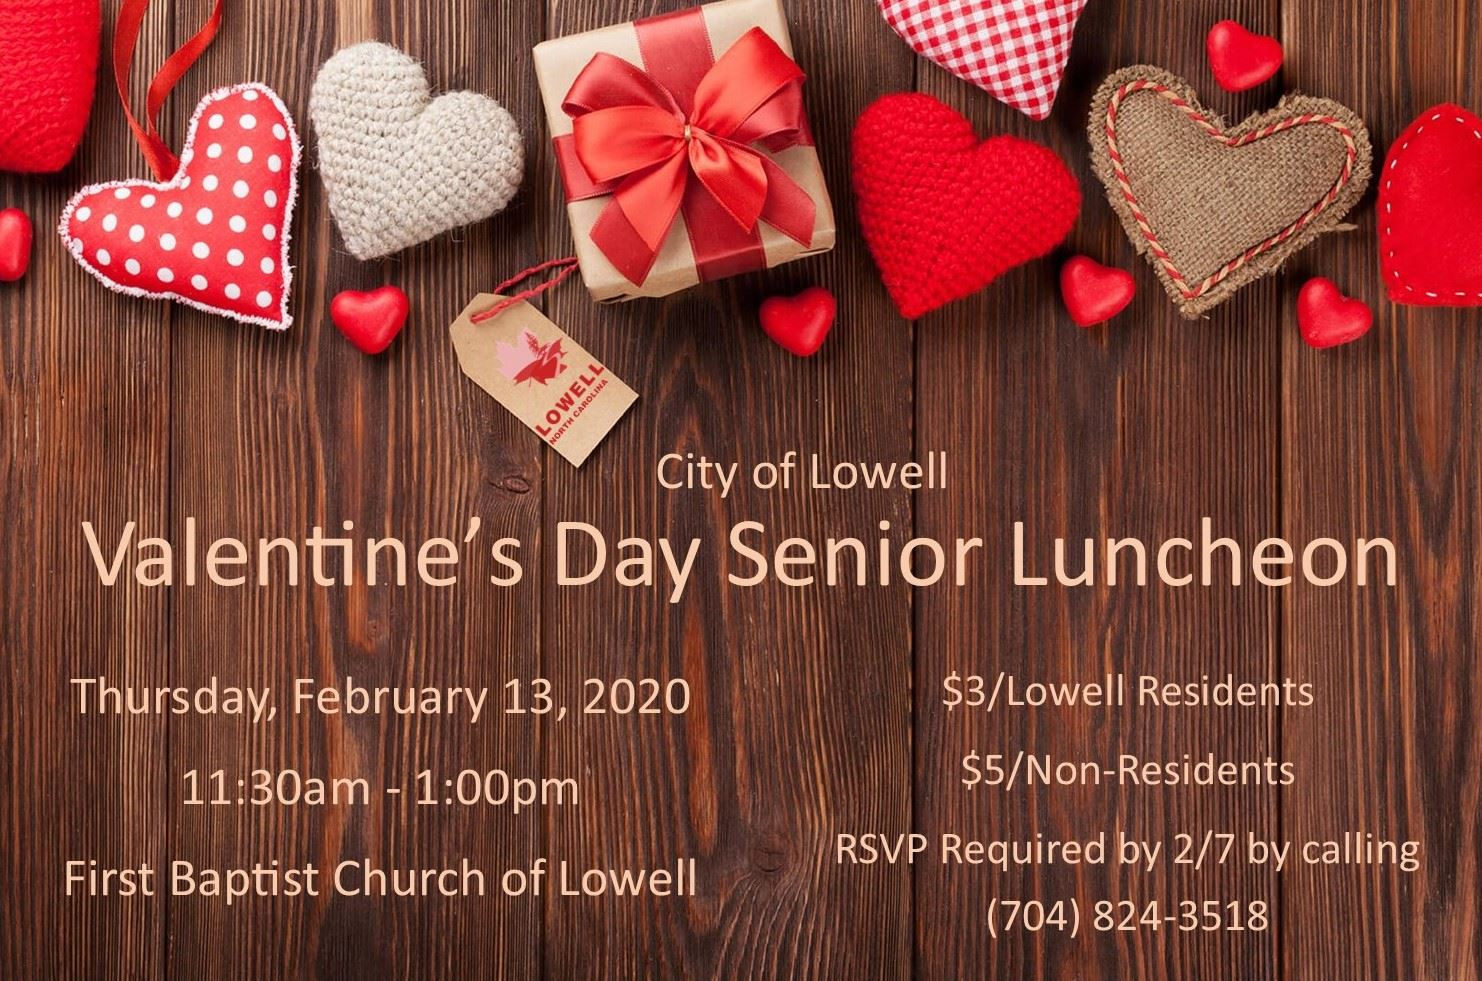 Valentines Day Senior Luncheon